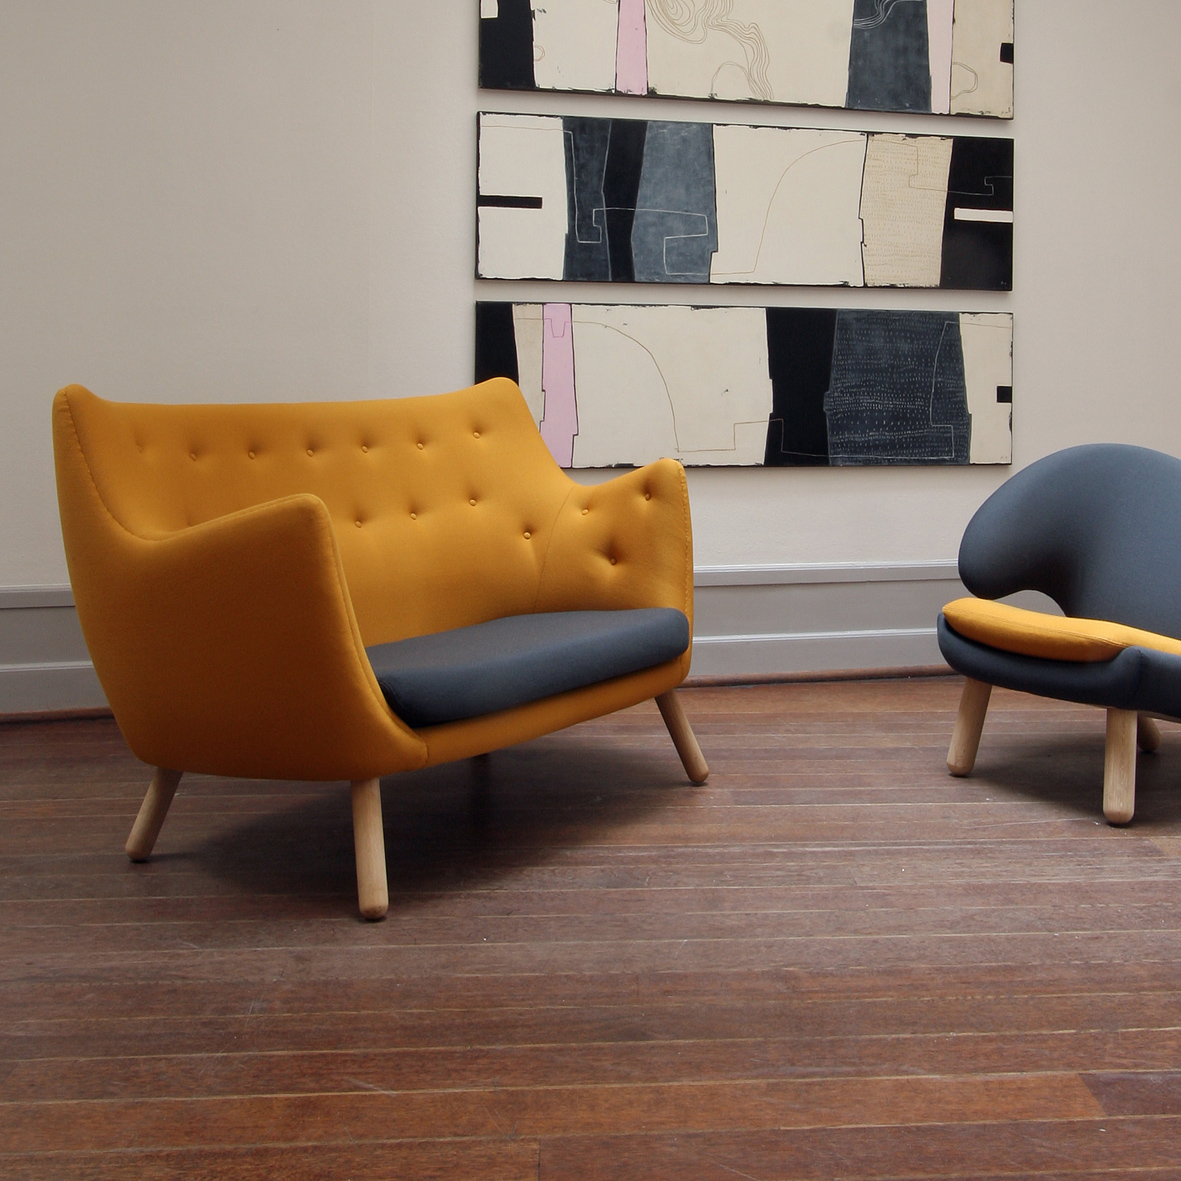 The Poet Sofa By Finn Juhl Shown With Pelican Chair